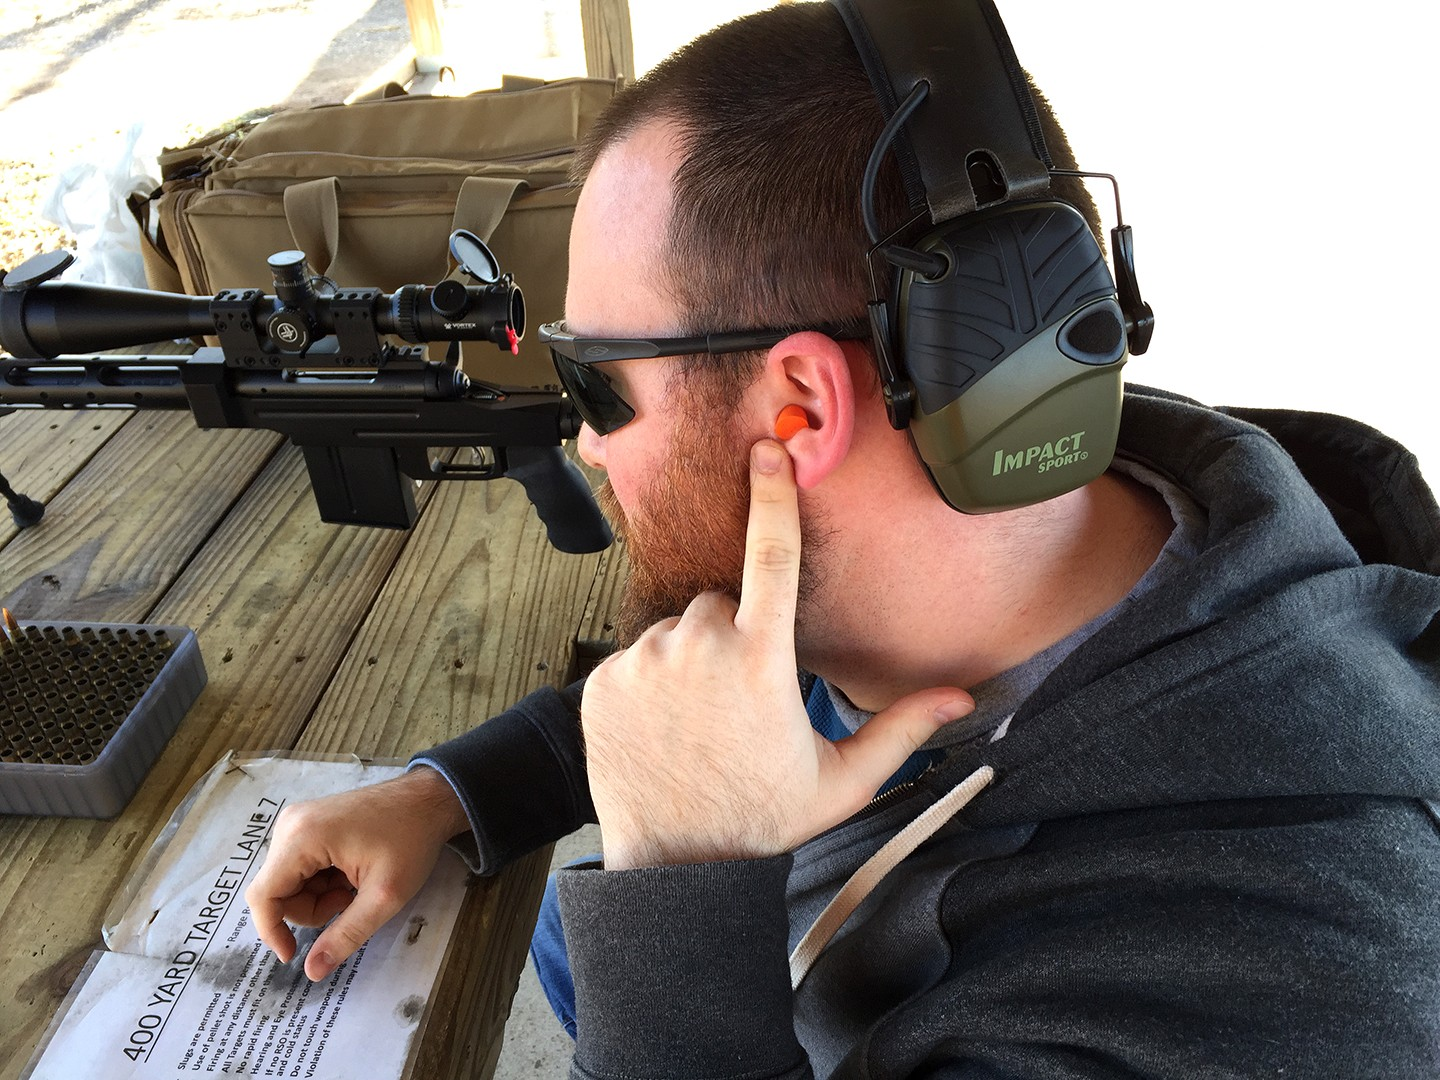 Basic firearm safety starts with owner, proper training